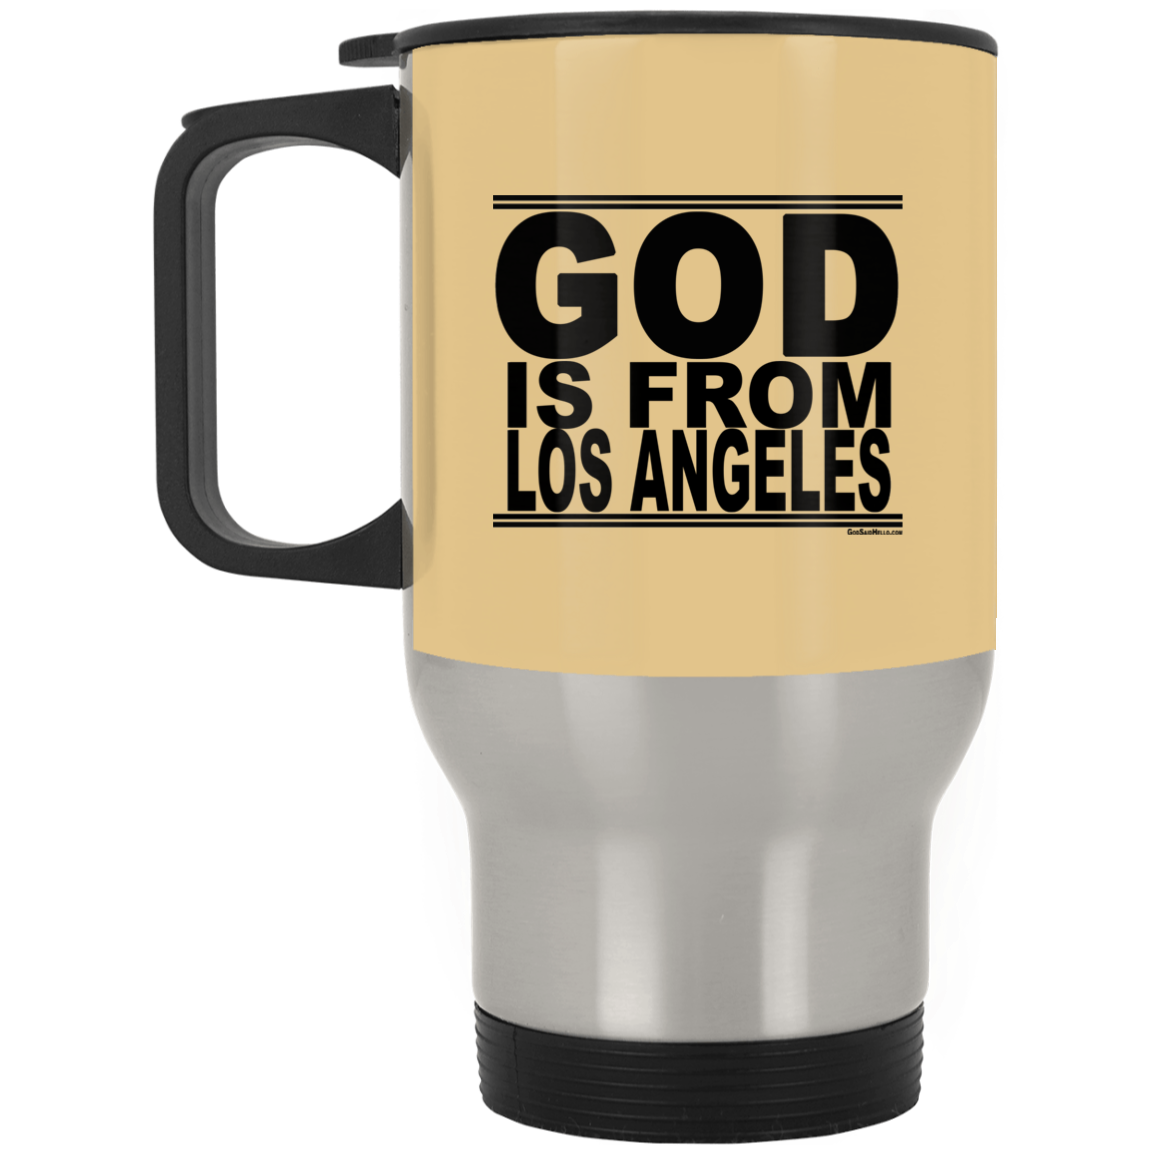 #GodIsFromLosAngeles - Stainless Steel Travel Mug